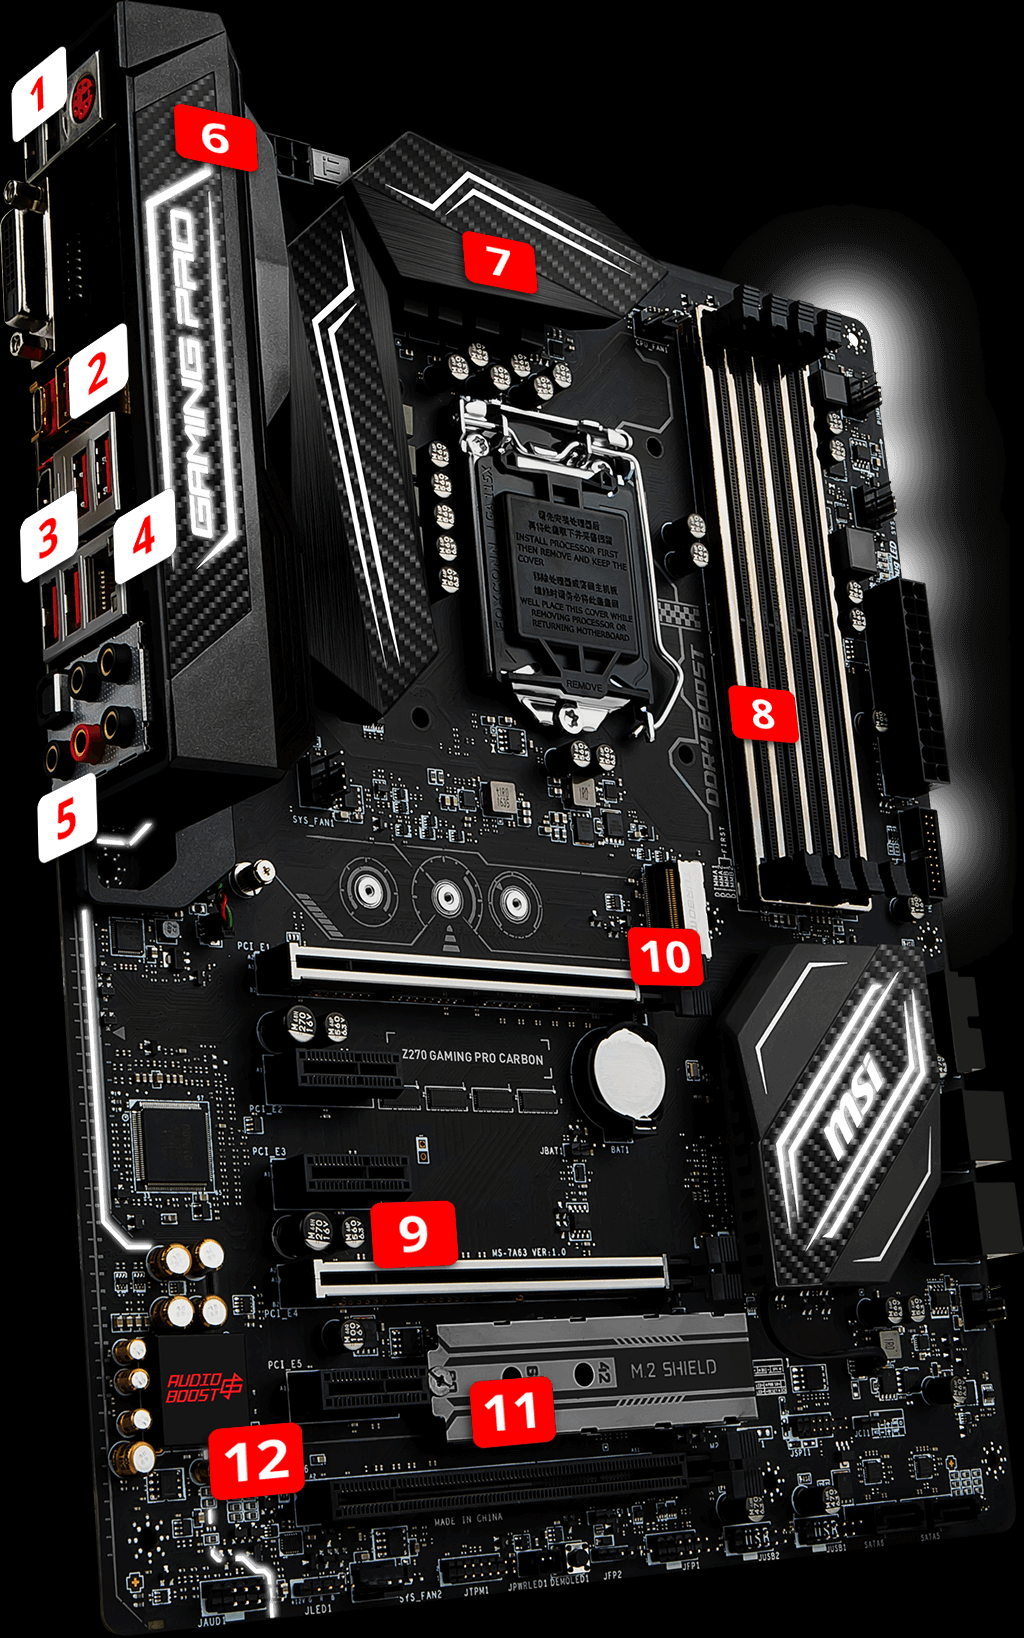 MSI Z270 GAMING PRO CARBON motherboard supports 7th Intel Kaby Lake